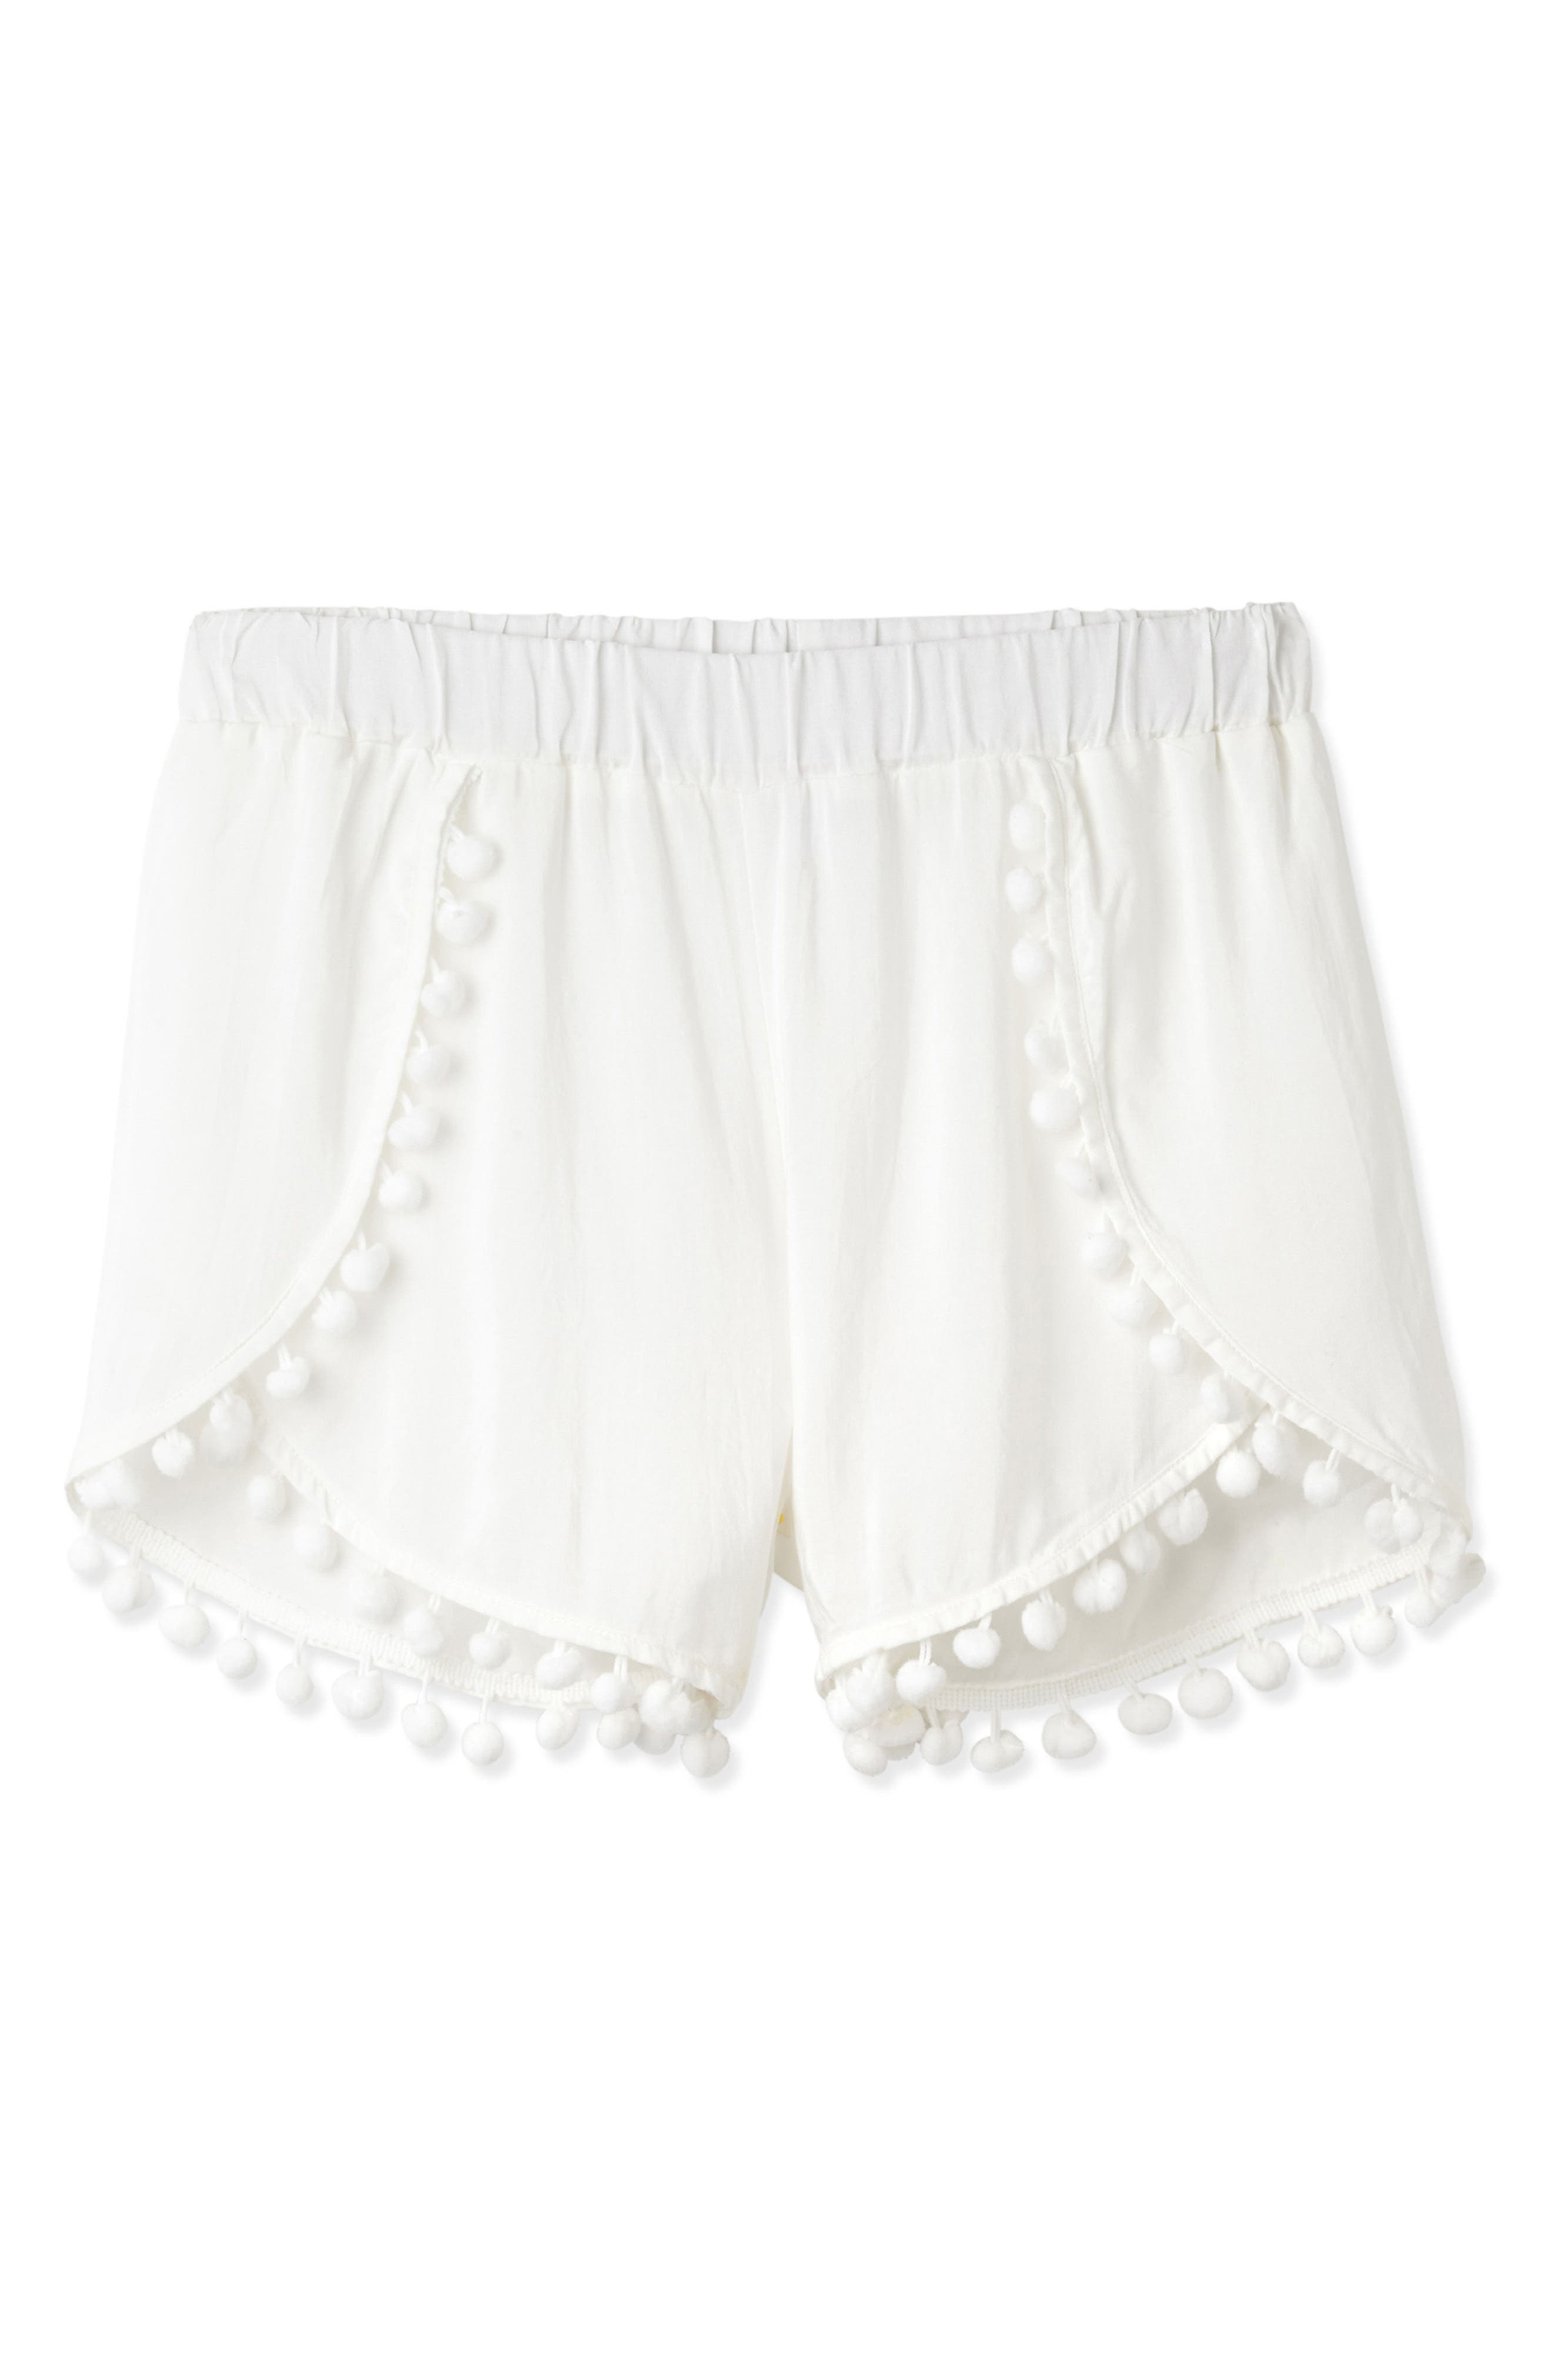 Pompom Cover-Up Shorts,                         Main,                         color, 100